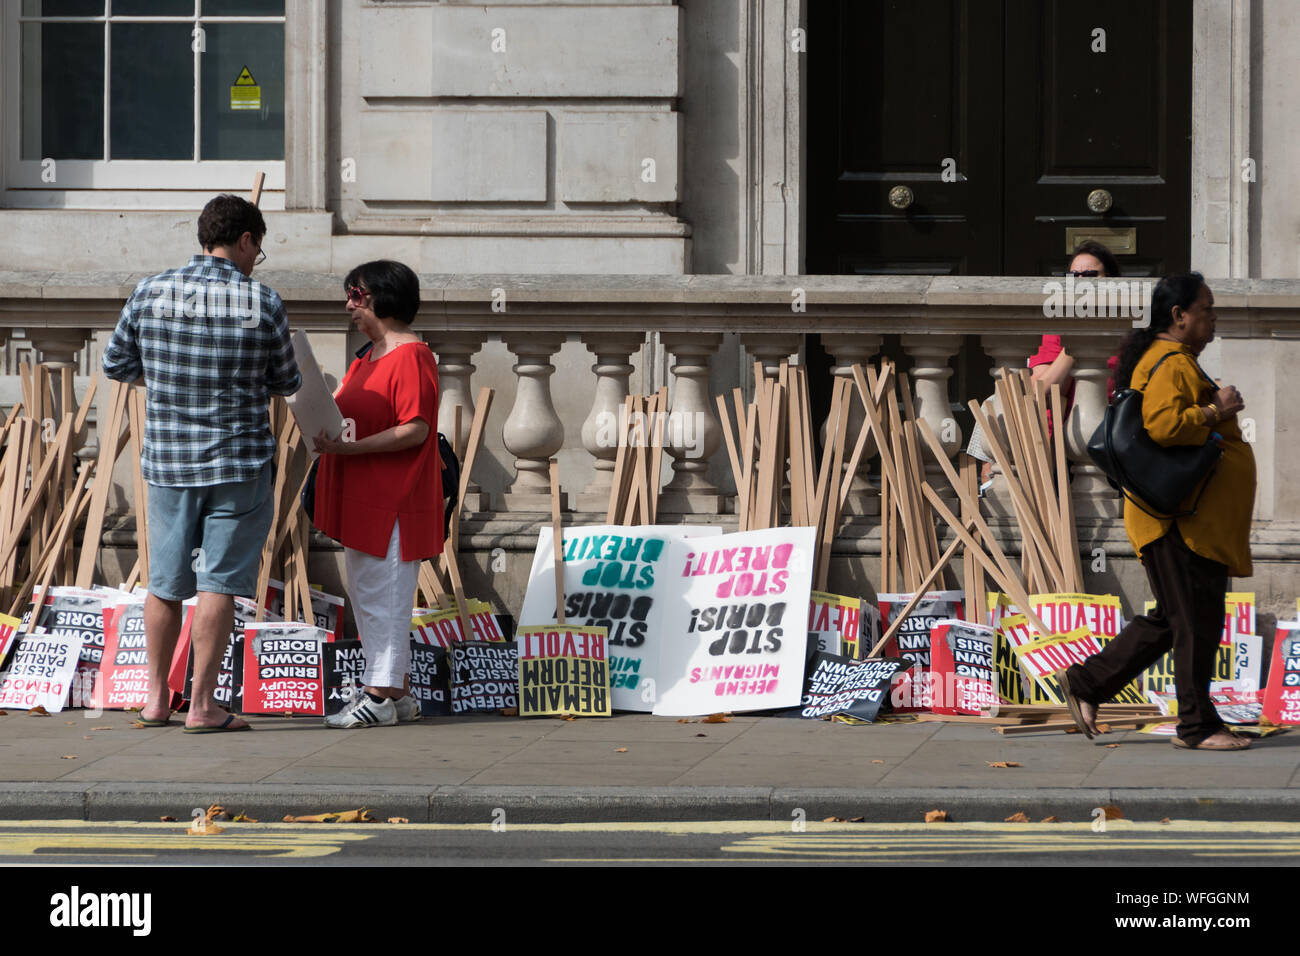 Anti Boris Johnson demonstration in front of Downing Street No 10, 31st Aug 2019, London UK Stock Photo